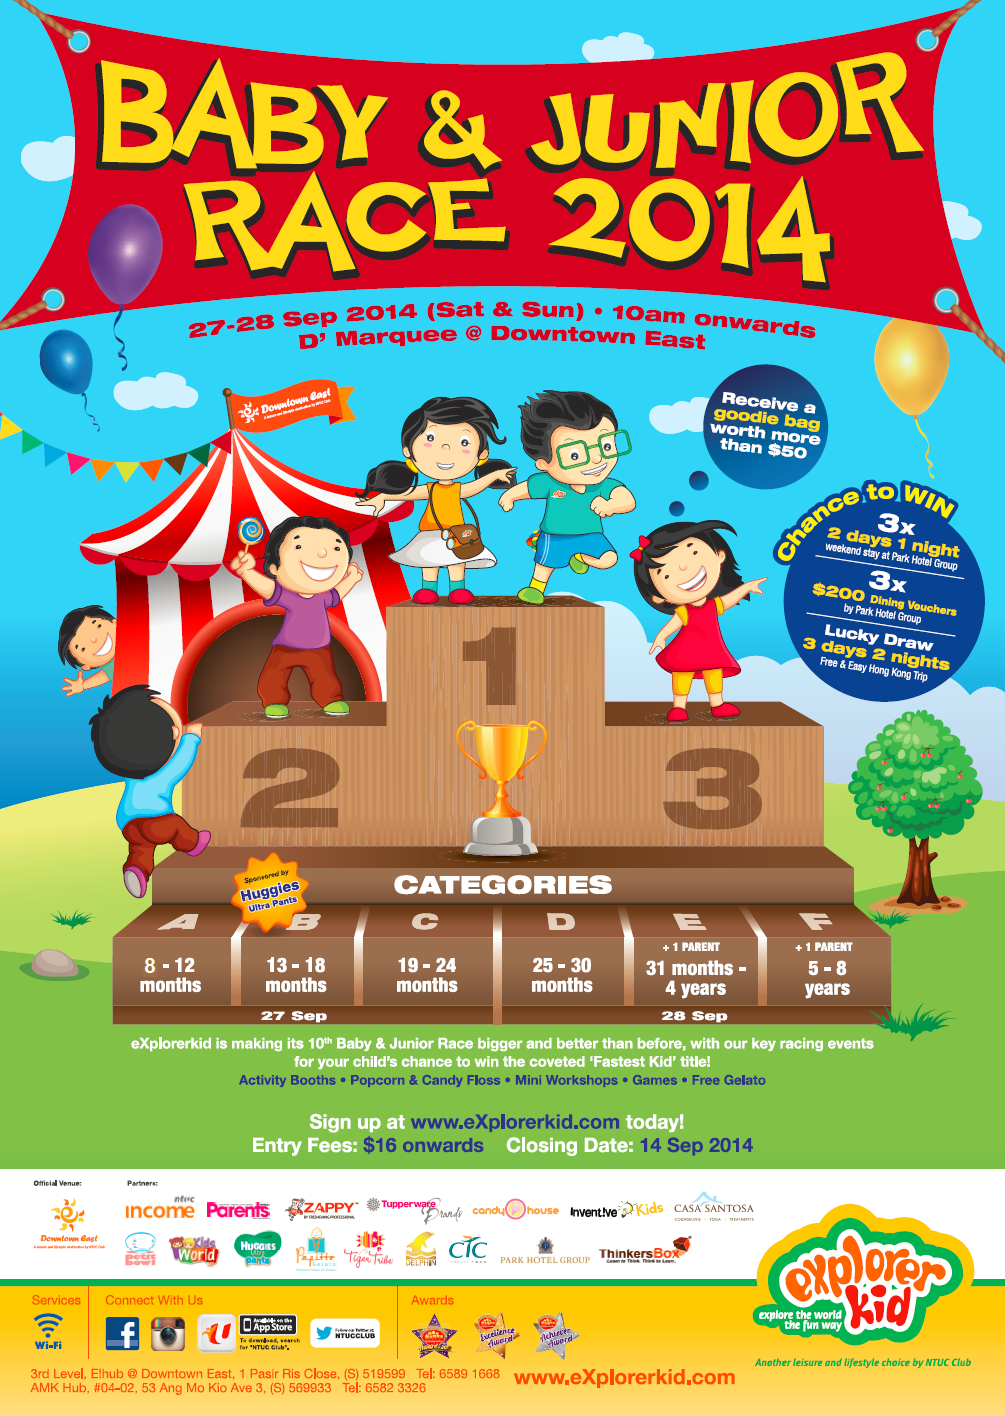 Baby & Junior Race 2014